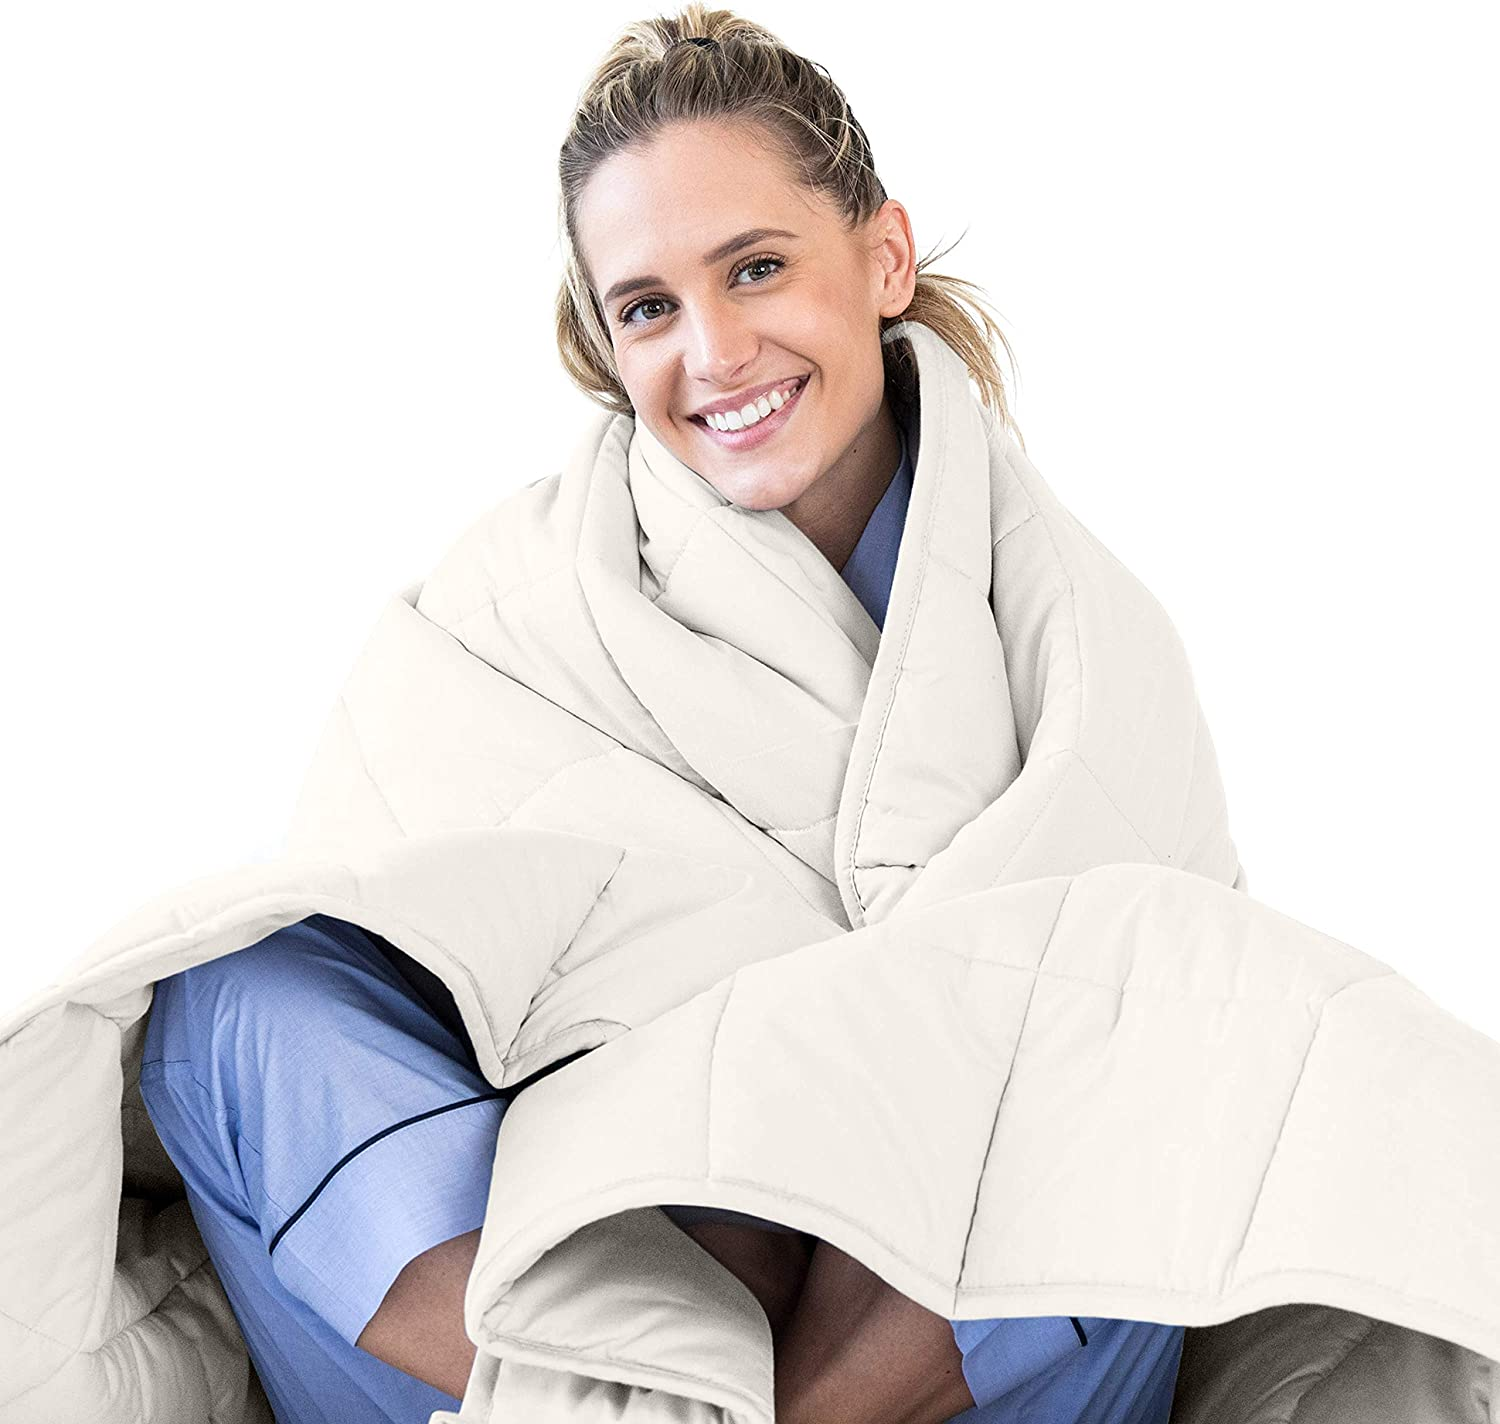 LUNA Adult Weighted Blanket | Individual Use - 20 lbs - 60x80 - Queen Size Bed | 100% Oeko-Tex Certified Cooling Cotton & Glass Beads | USA Designed | Heavy Cool Weight | Ivory